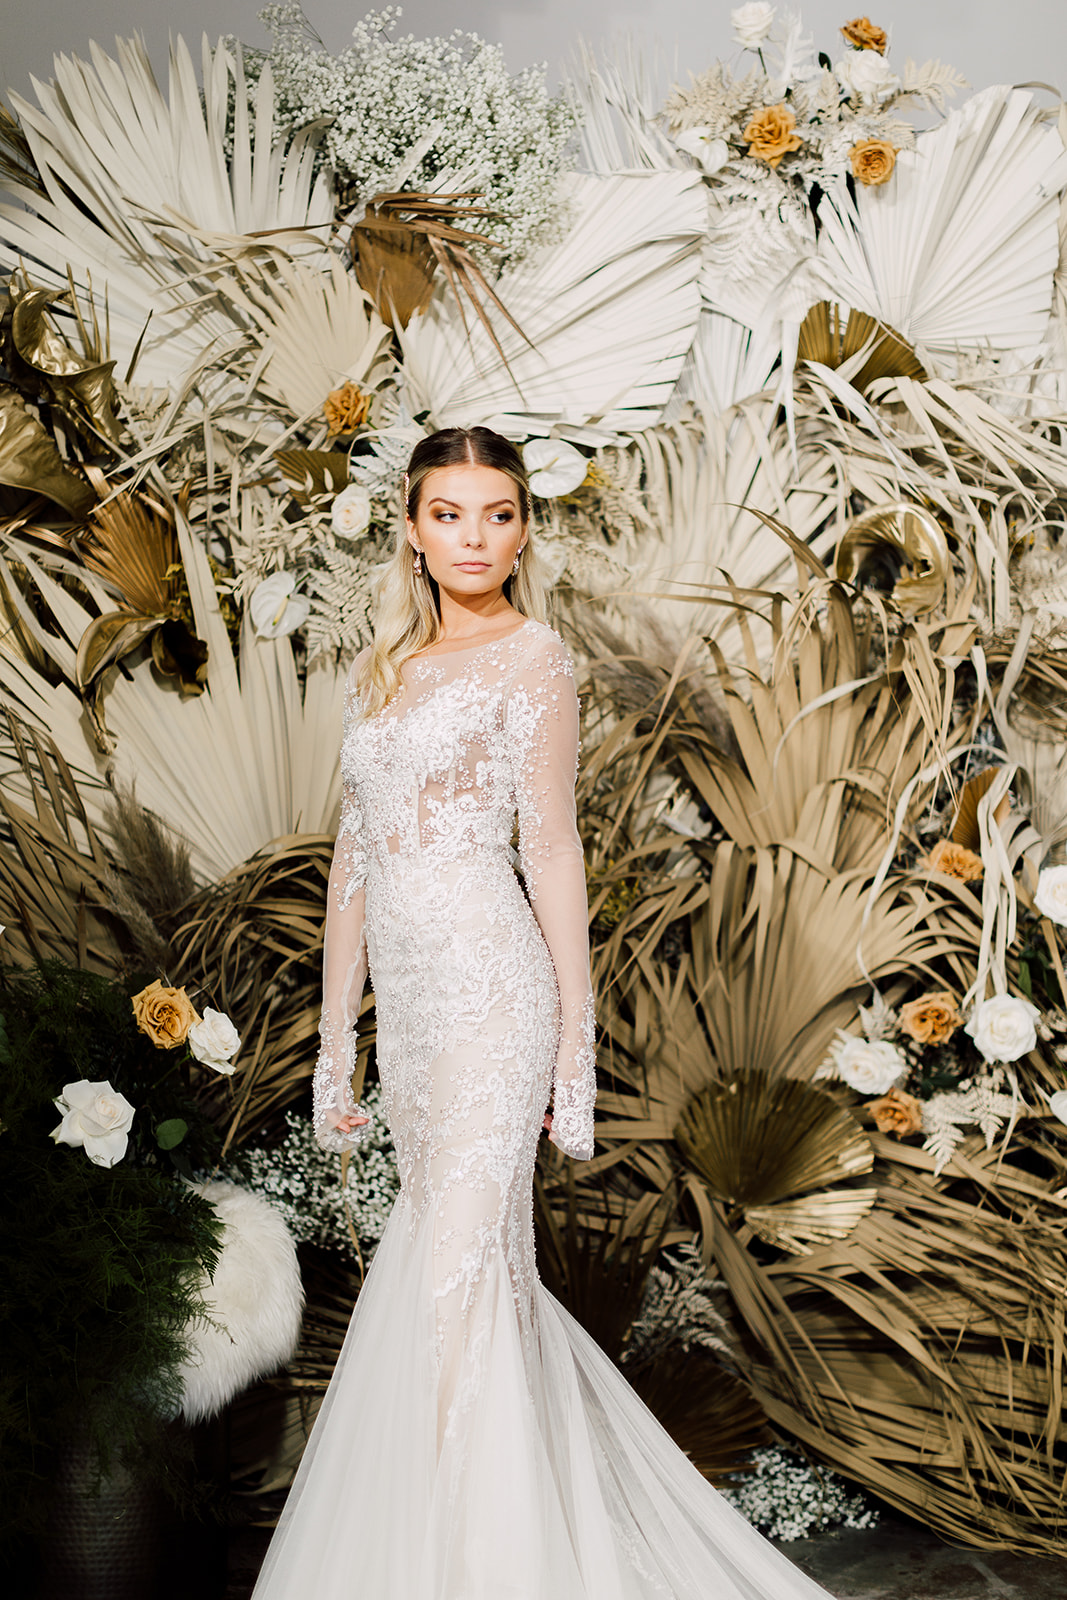 REVEL Orlando wedding decor and styling ines di santo the bridal finery